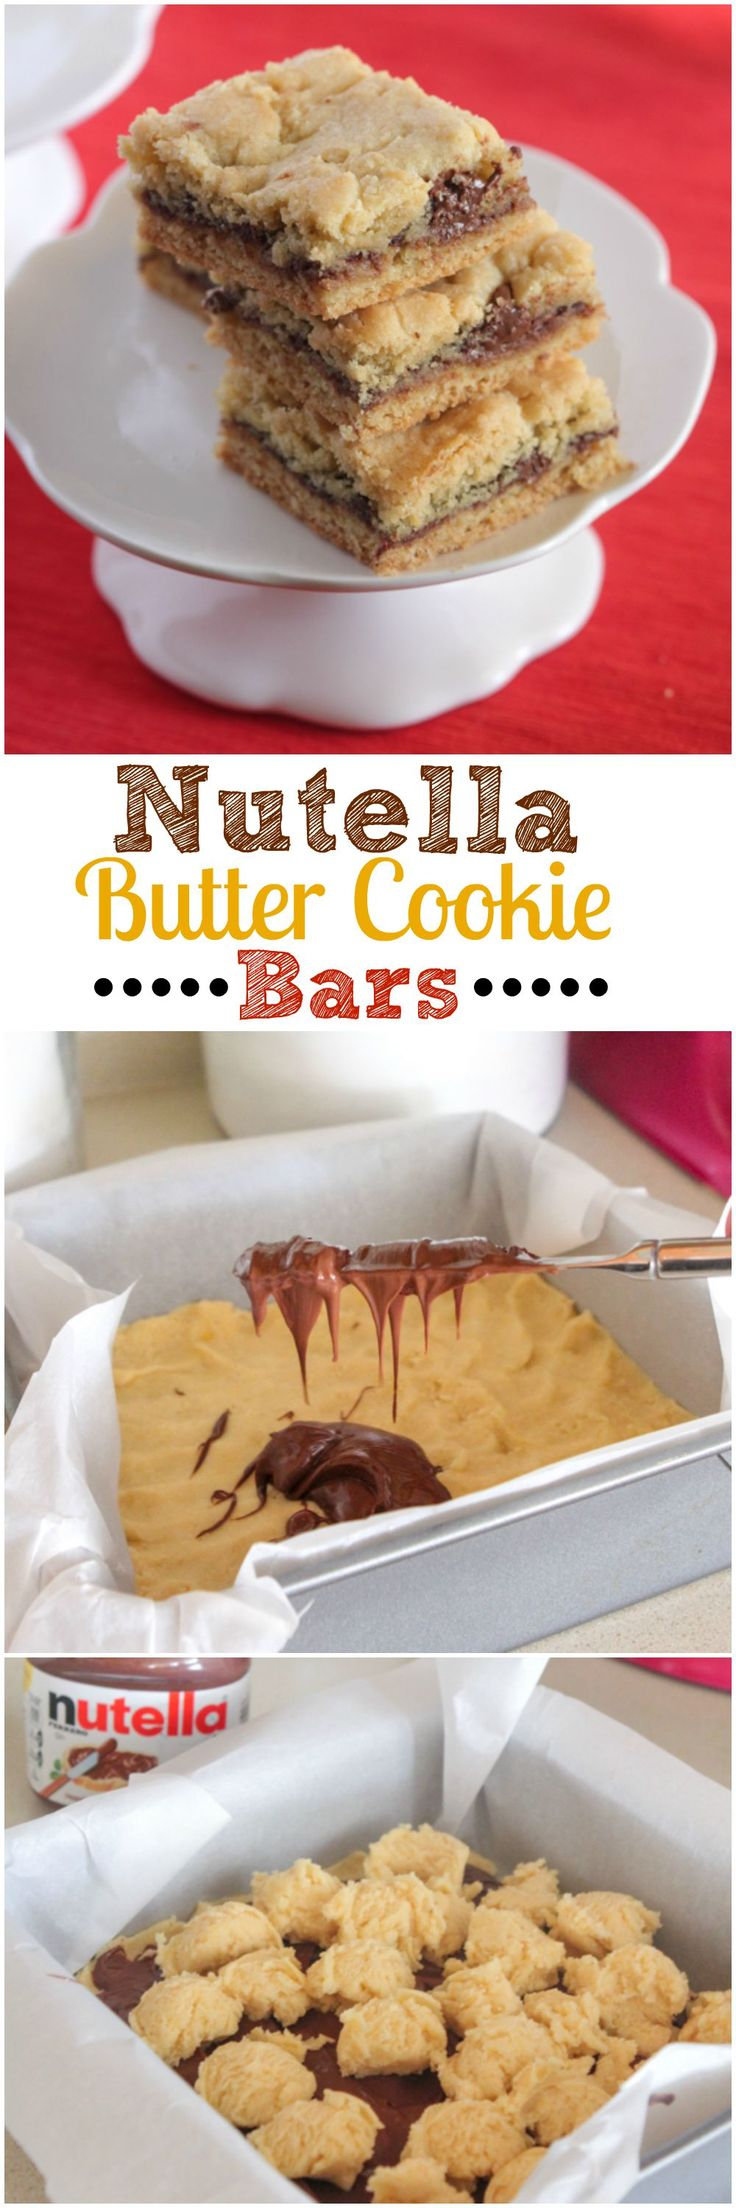 Nutella surrounded by a butter cookie crust - it doesn't get much better than that. Separate your dough in half. Spread one half in a baking tin. Spread Nutella on top and cover with the other half of the dough. Bake for a Nutella delight inside and out.